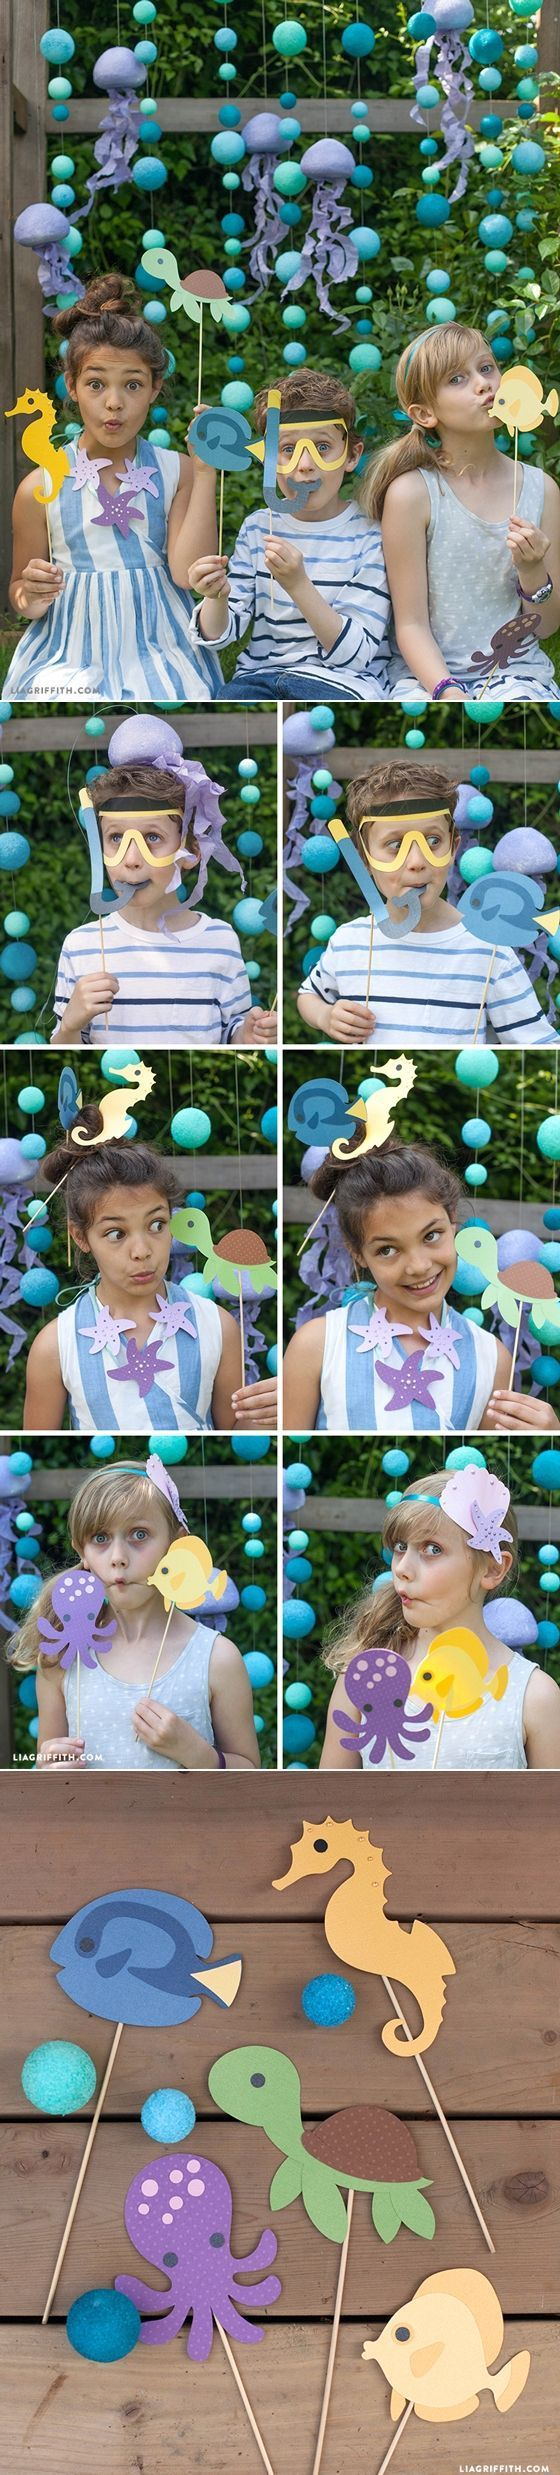 Great Photo Props For An Under The Sea Birthday Party http://www.LiaGriffith.com